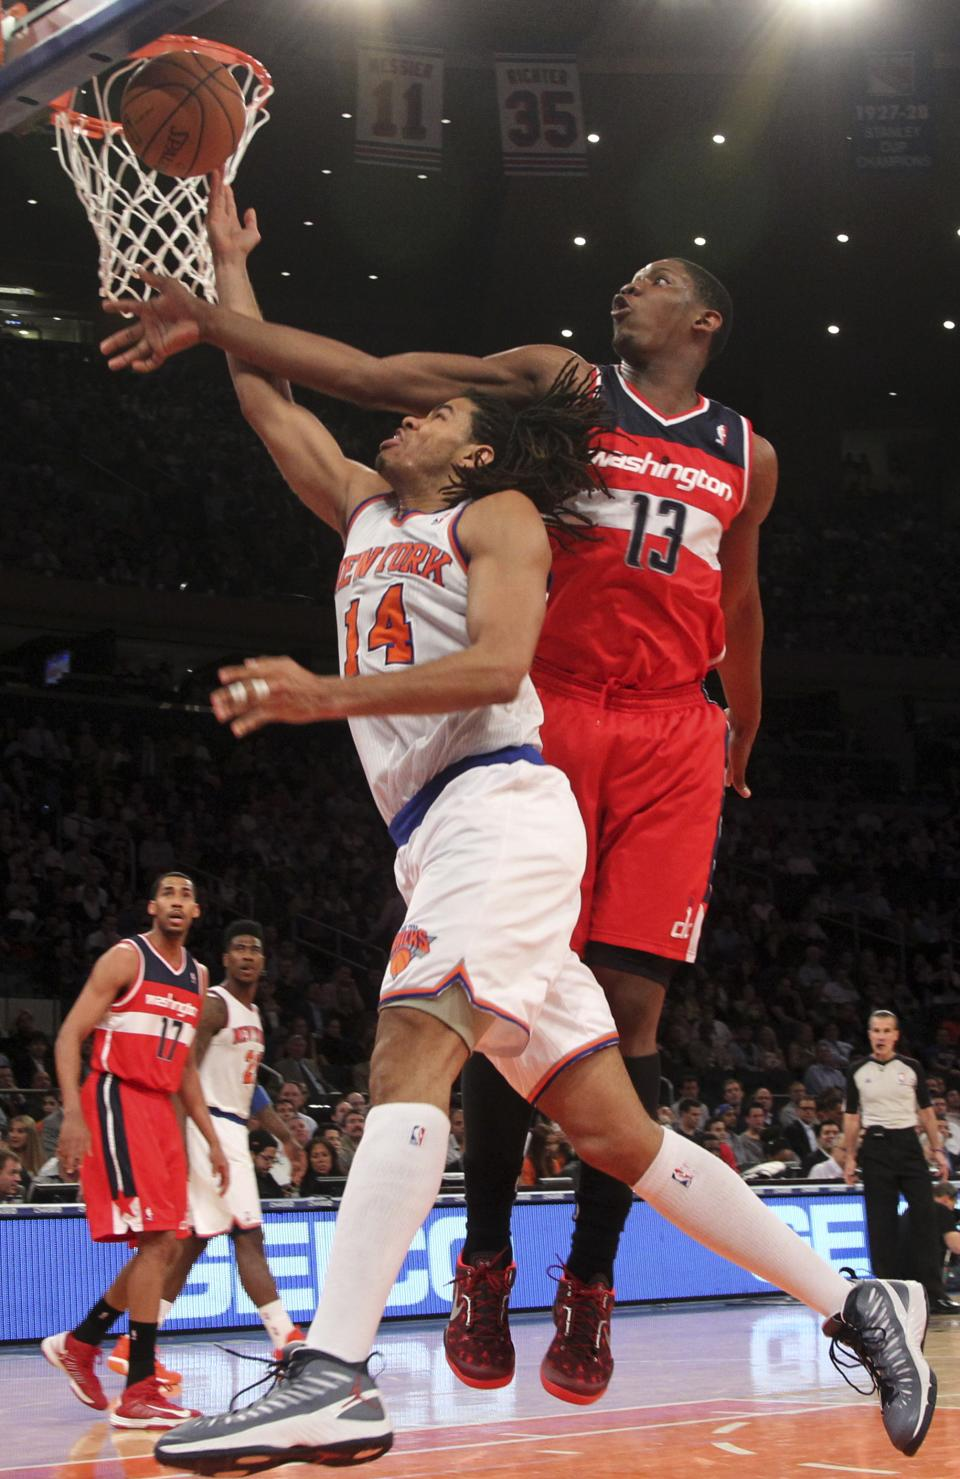 Washington Wizards' Kevin Seraphin (13) blocks New York Knicks' Chris Copeland from going to the basket during the second half of an NBA basketball game, Tuesday, April 9, 2013, at Madison Square Garden in New York. The Knicks won 120-99. (AP Photo/Mary Altaffer)